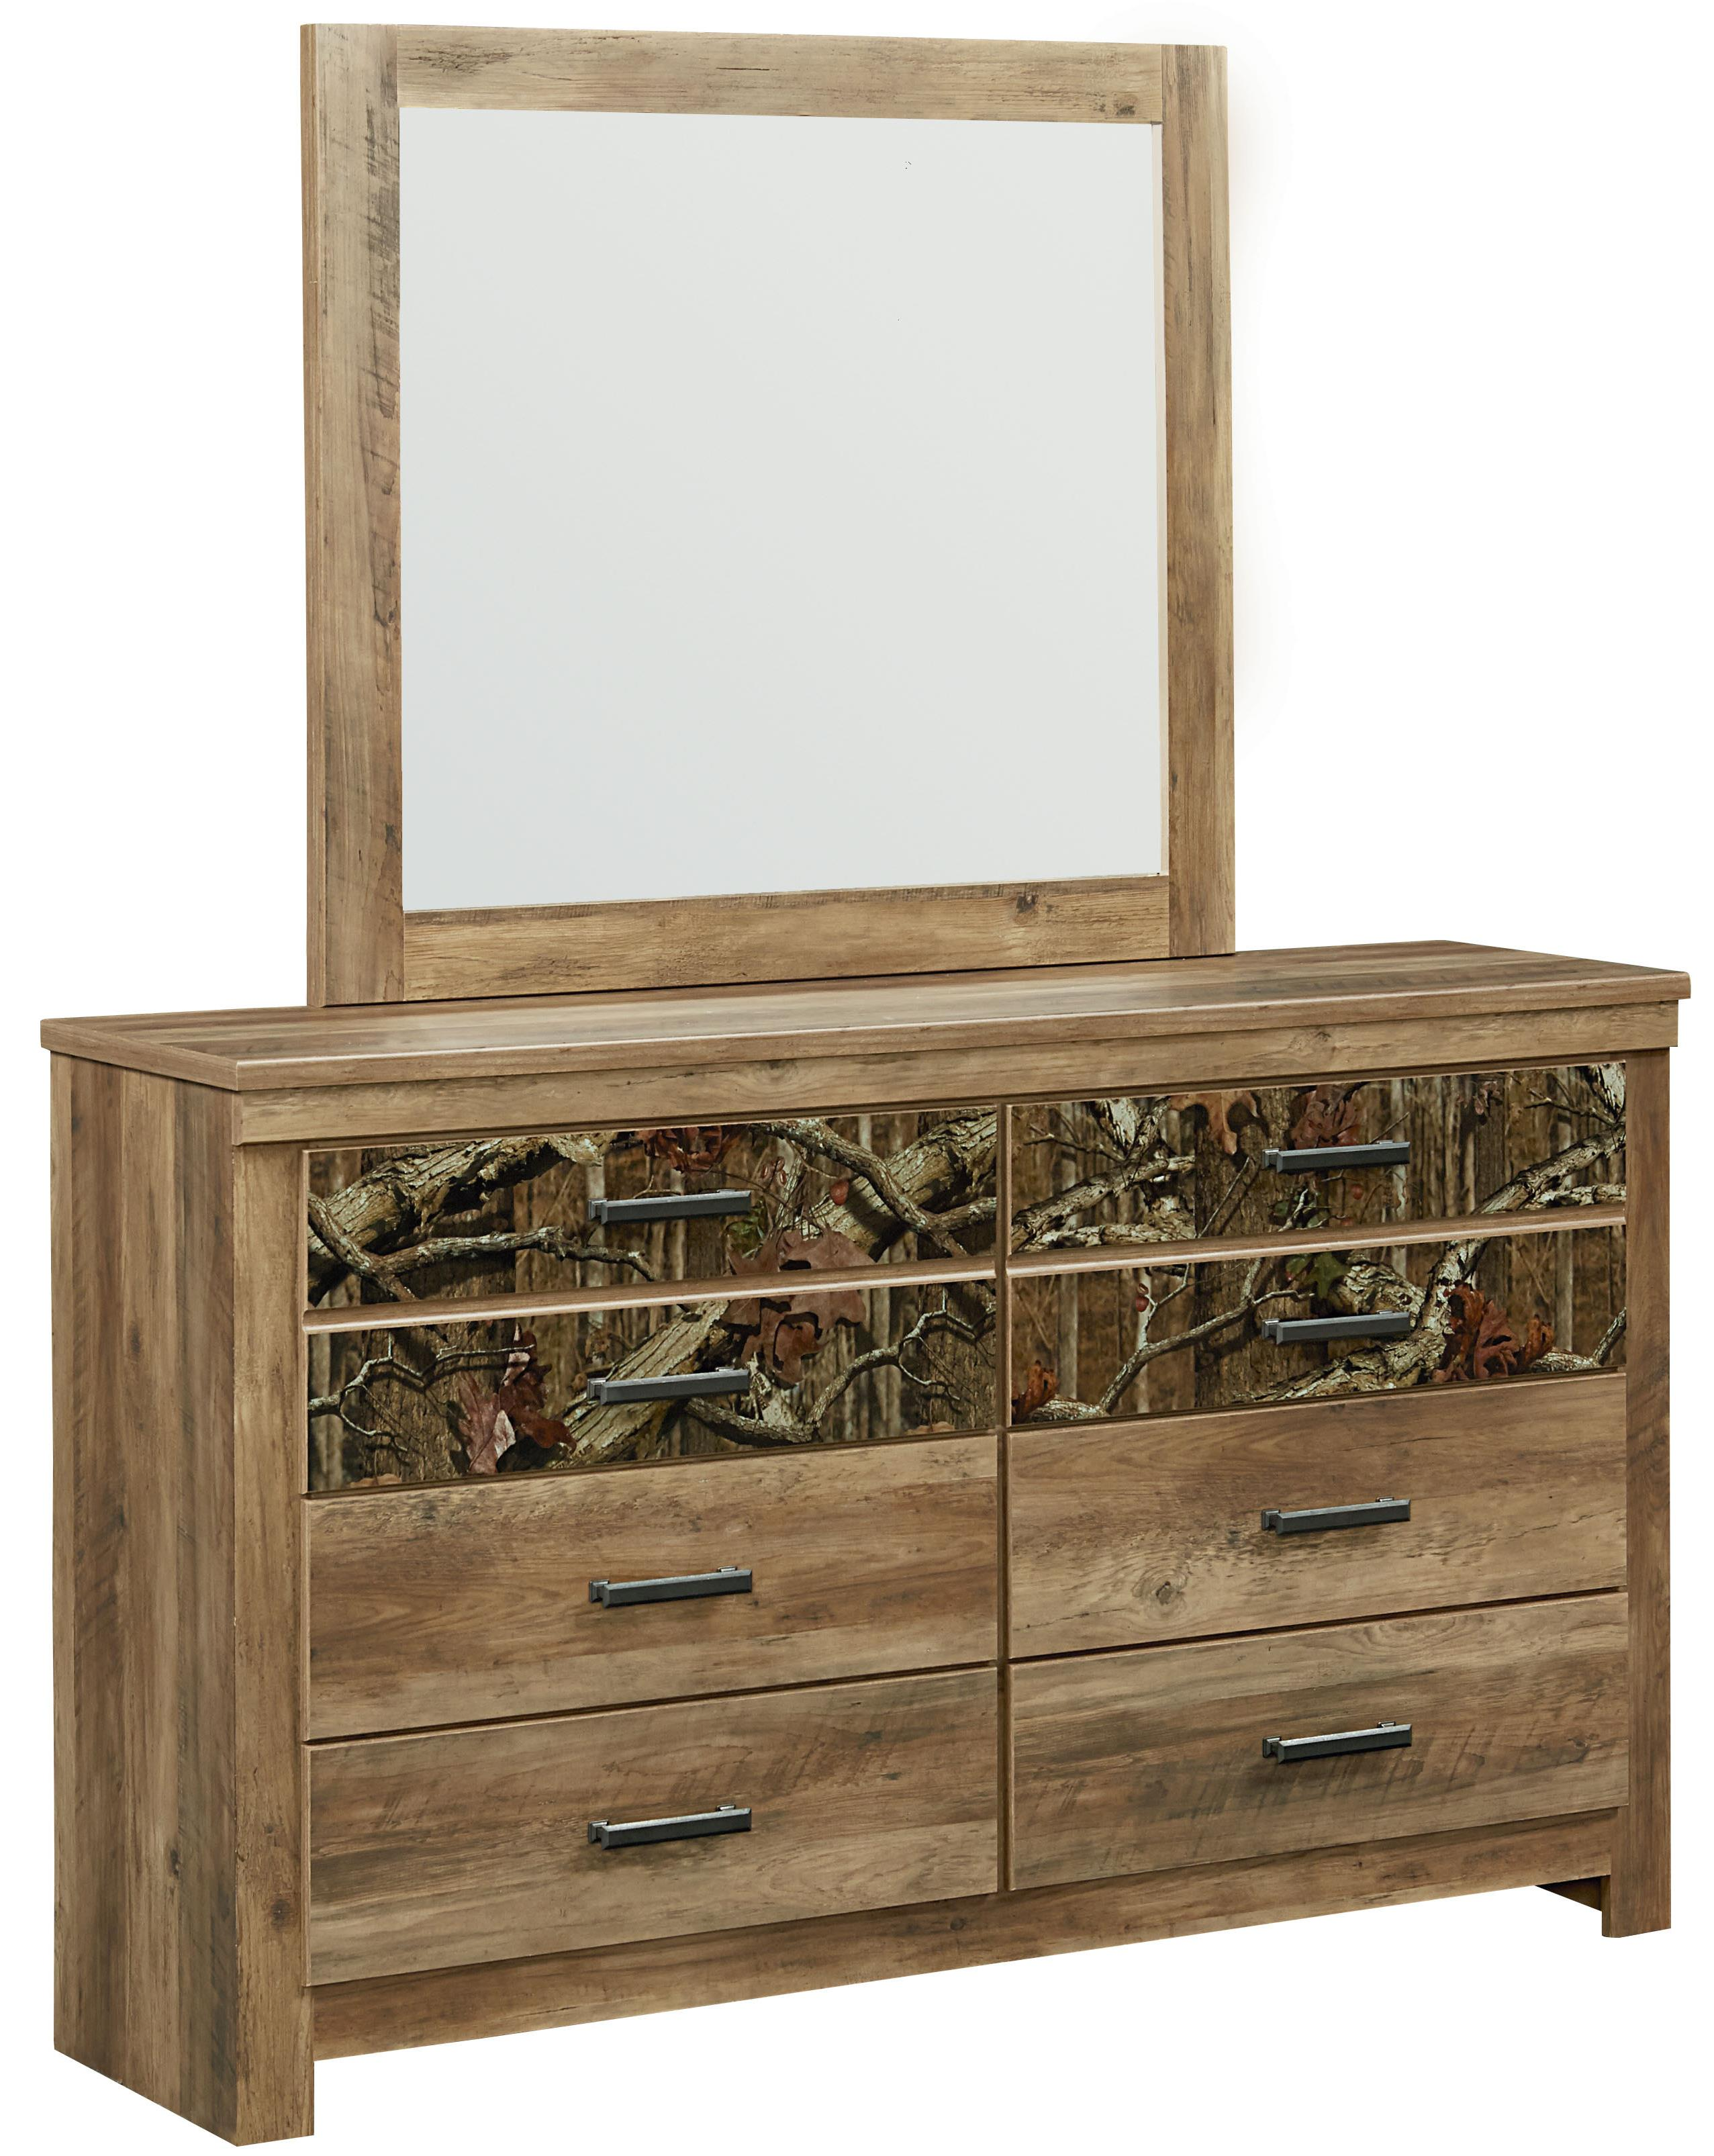 Standard Furniture Habitat Dresser and Mirror - Item Number: 55459+55468